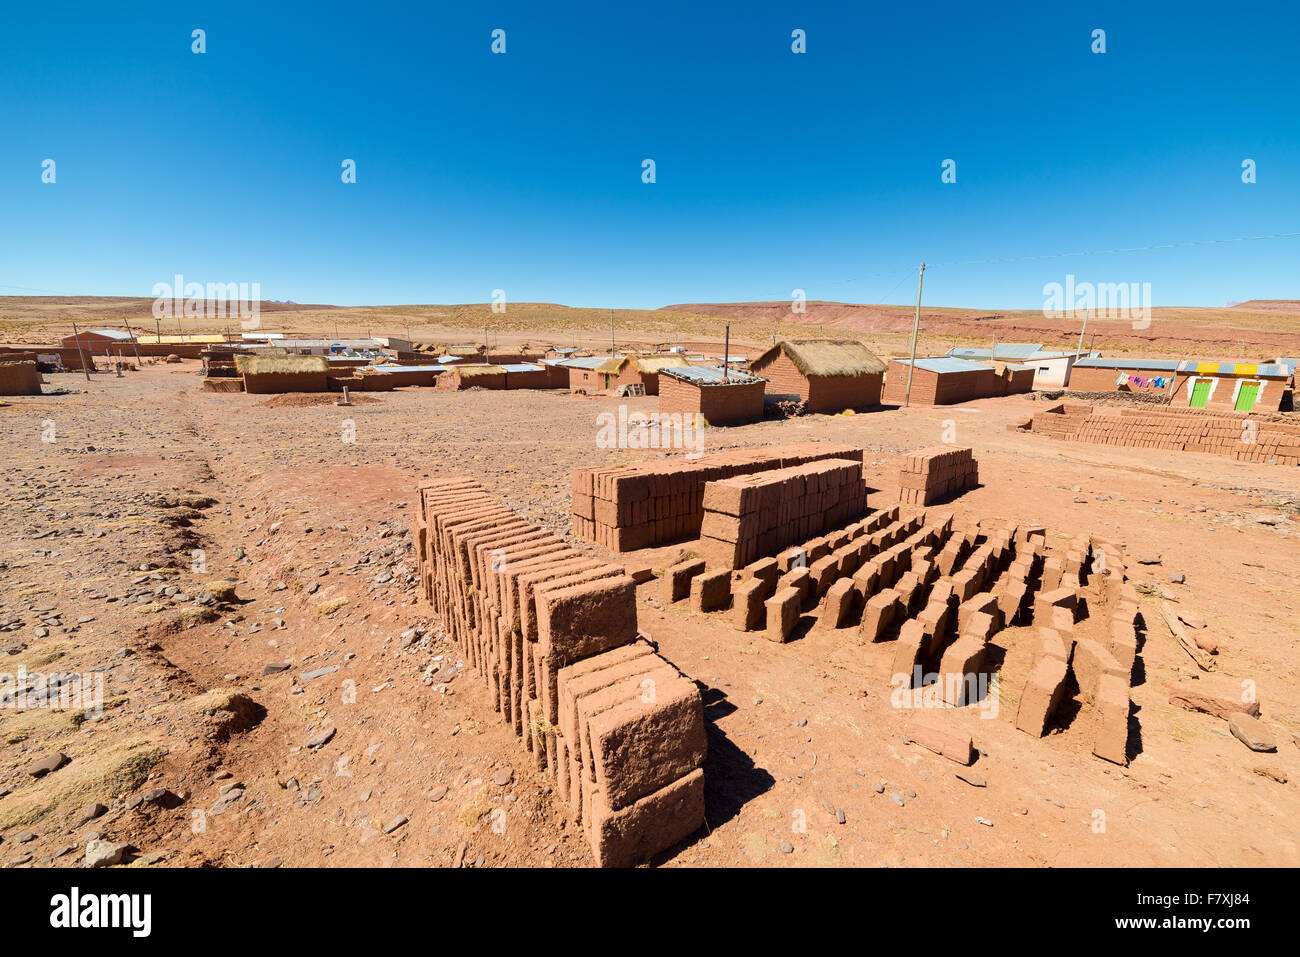 Rural village in the desertic landscape on the Andean Highlands, in Bolivia. Mud bricks, known as 'Adobe', - Stock Image